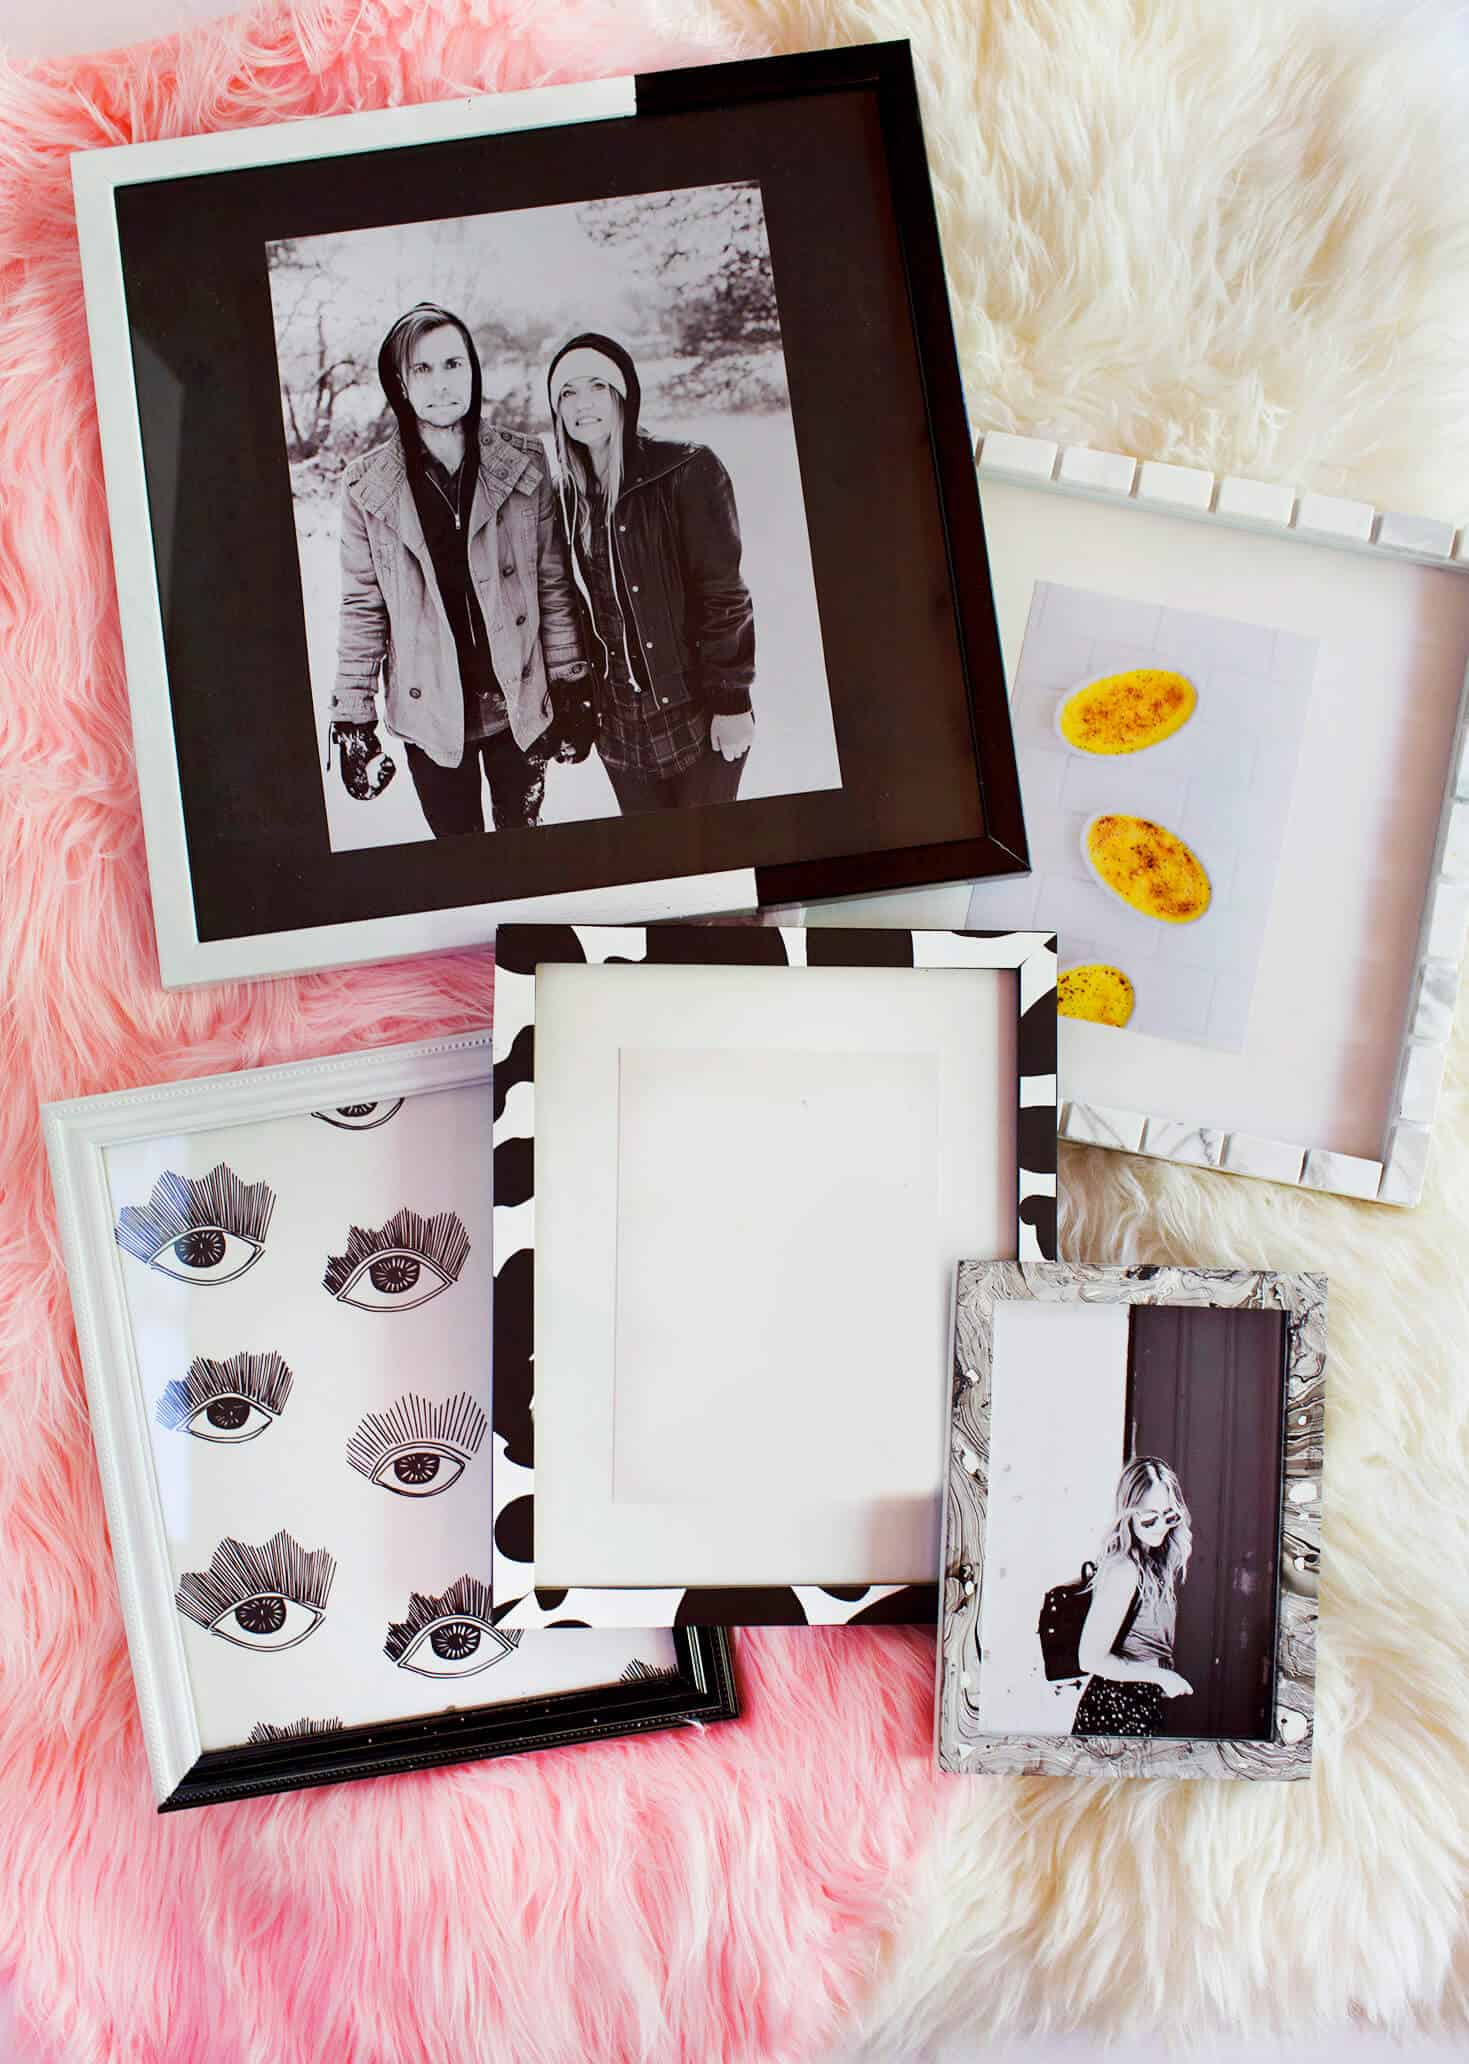 Ways to Update a Thrifted Photo Frame 1